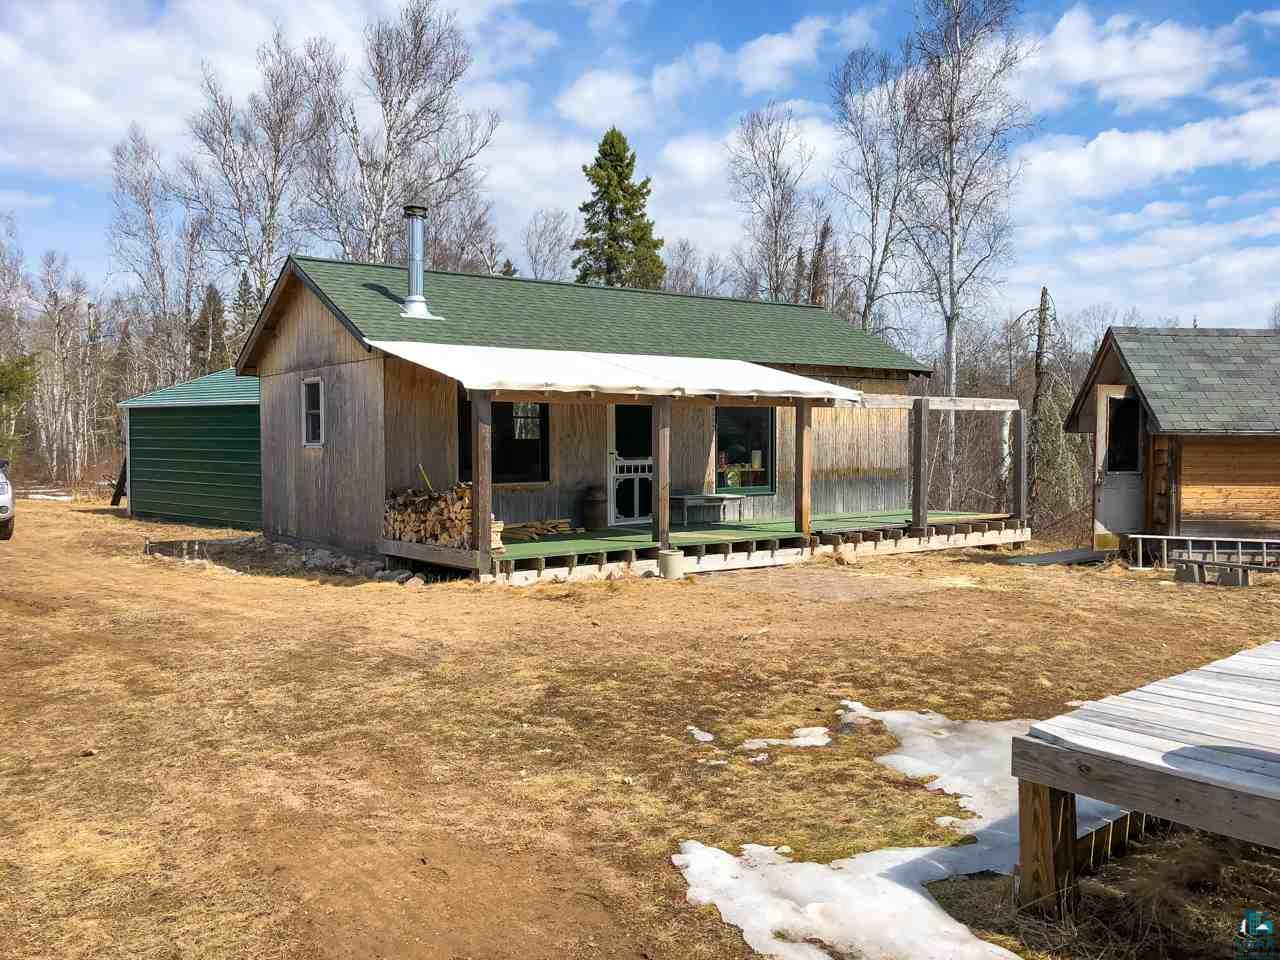 Ely MN Country Homes and Cabins - Ely MN Realtor with